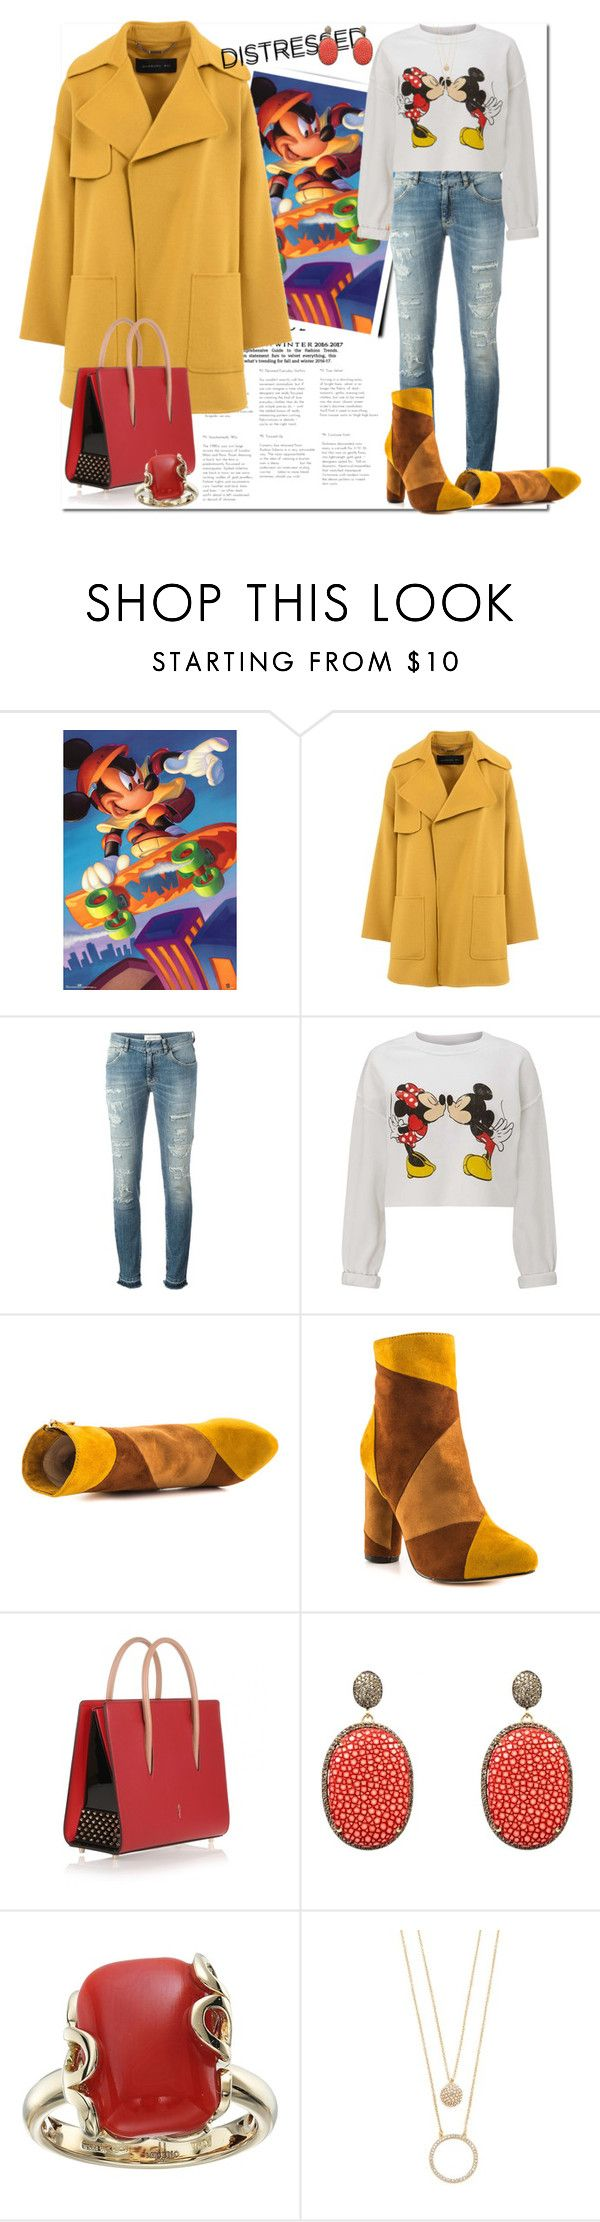 """""""True Blue: Distressed Denim_Fun with Distresed Denim"""" by msmith801 ❤ liked on Polyvore featuring Barbara Bui, Faith Connexion, Miss Selfridge, Cape Robbin, Christian Louboutin, Latelita, Miseno and Kate Spade"""